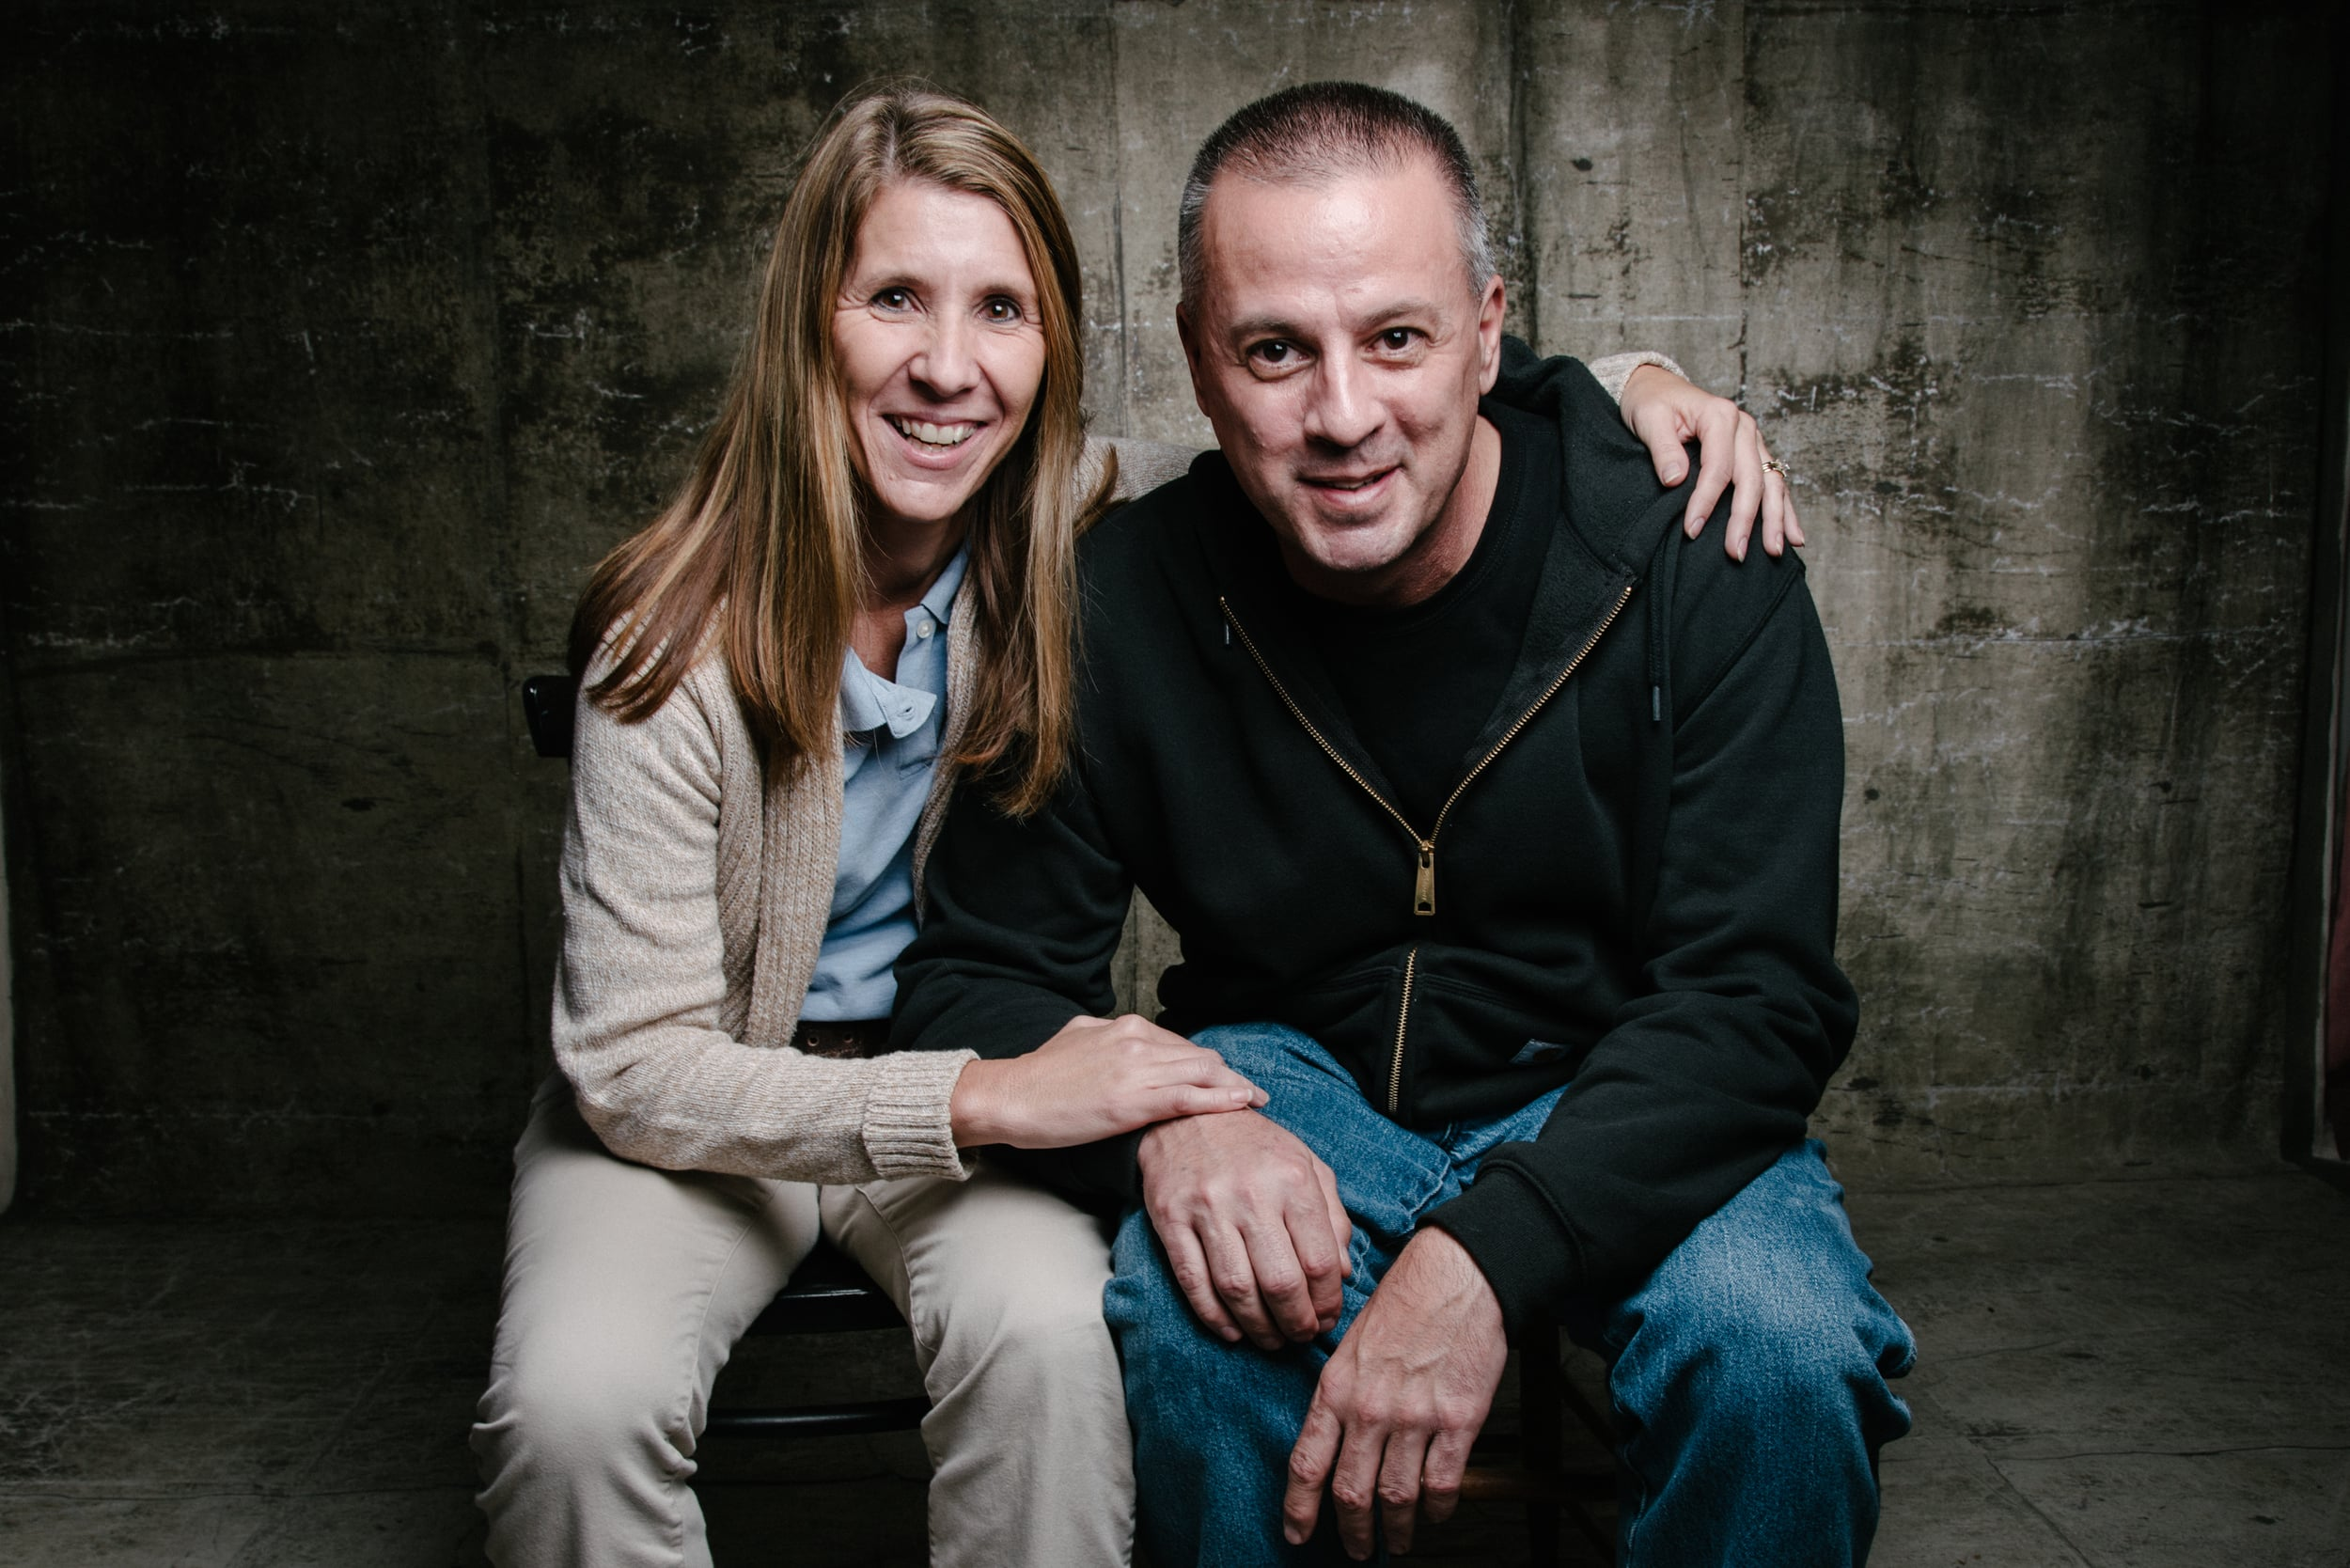 7 Billion Ones Randy bacon photography Bryan's story a 28 foot miracle